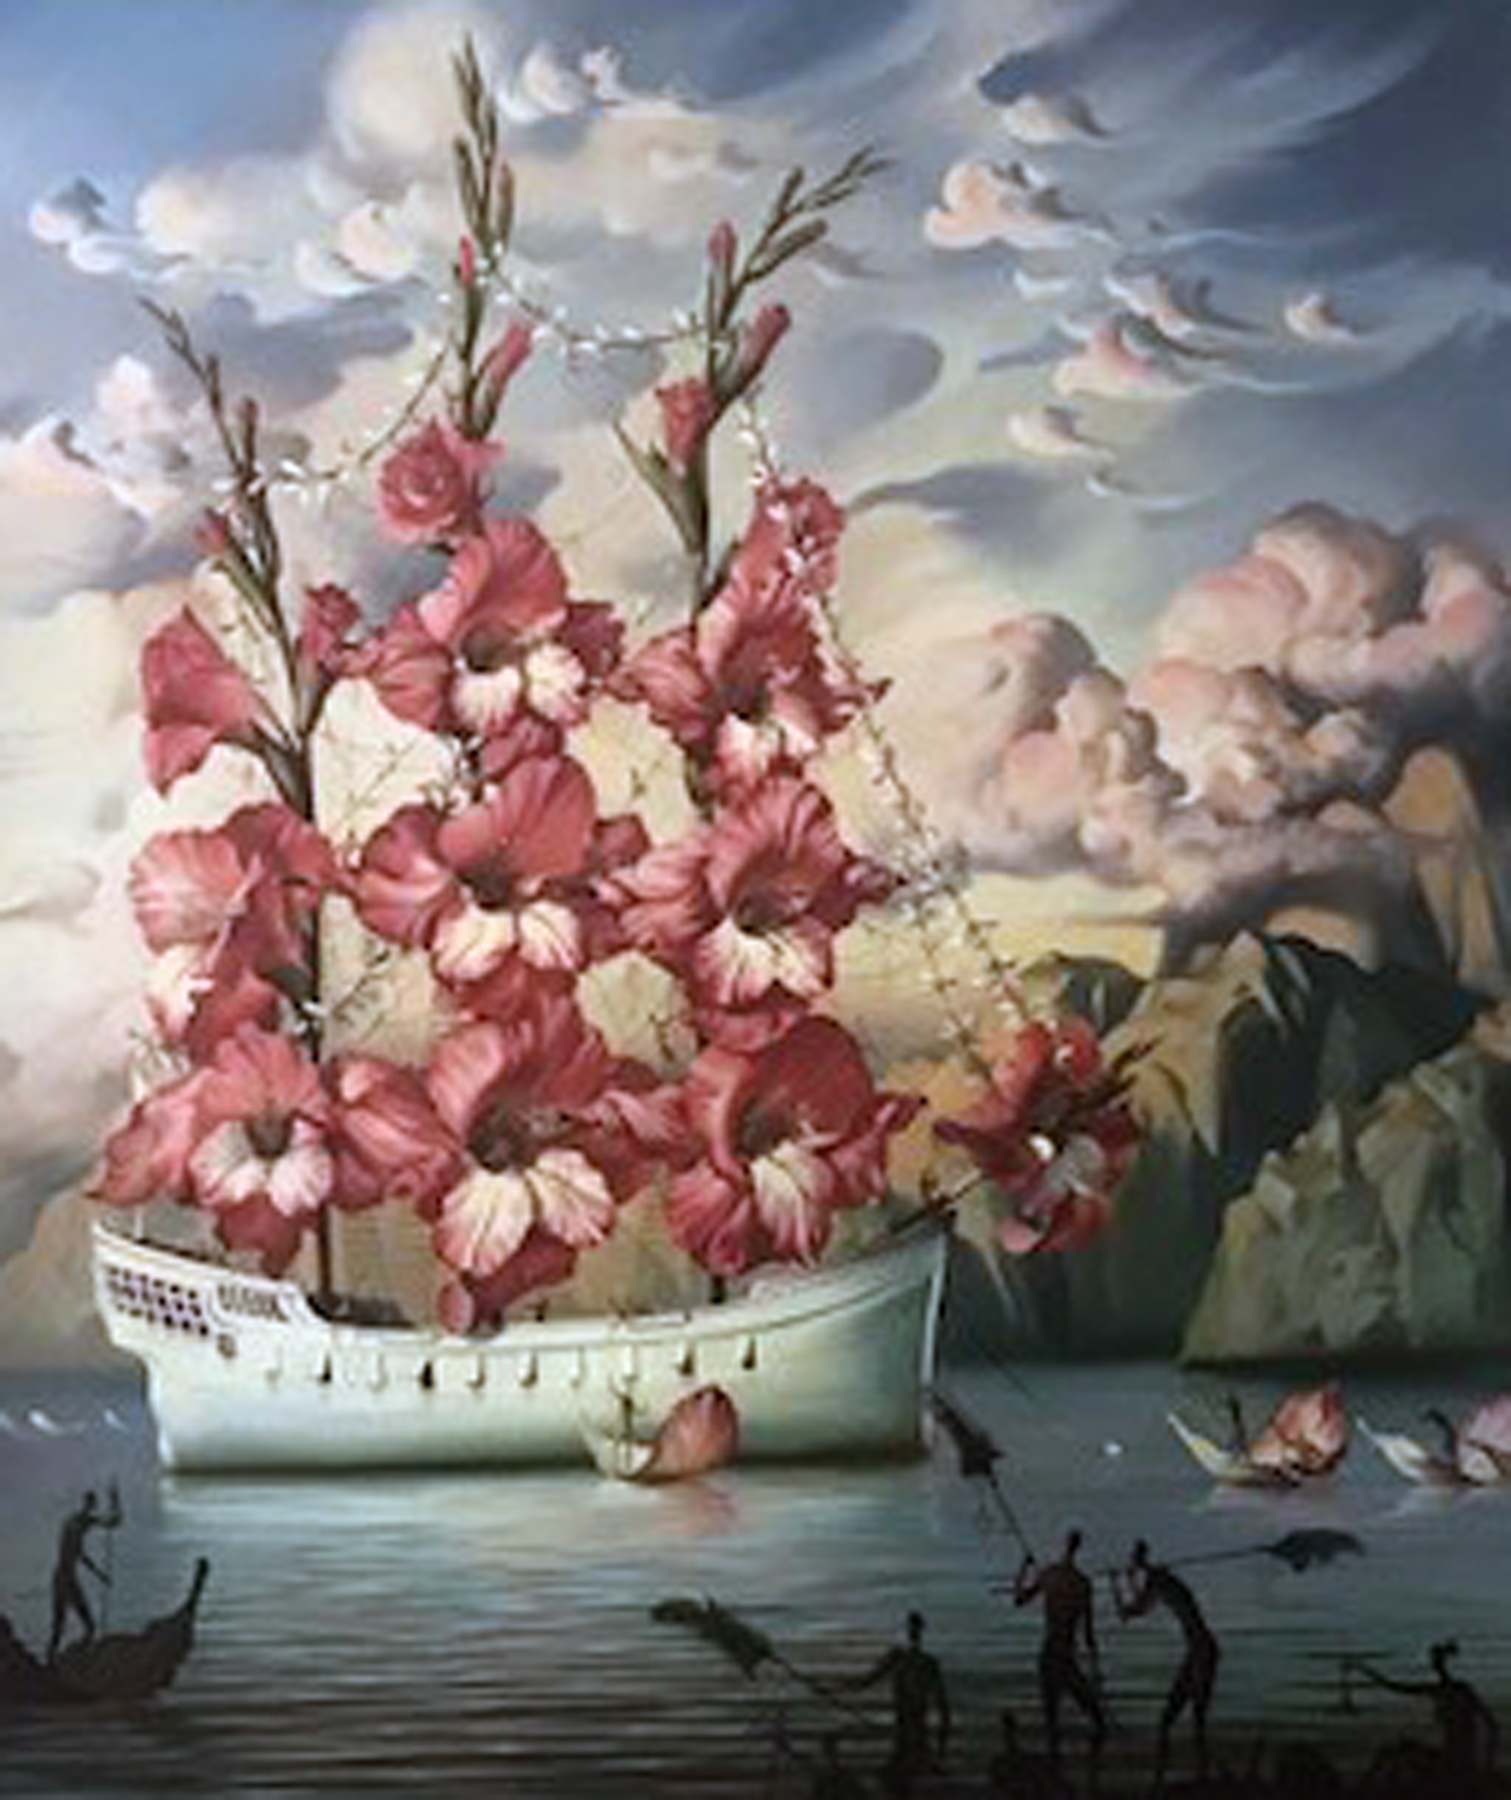 Arrival of the Flower Ship 2001